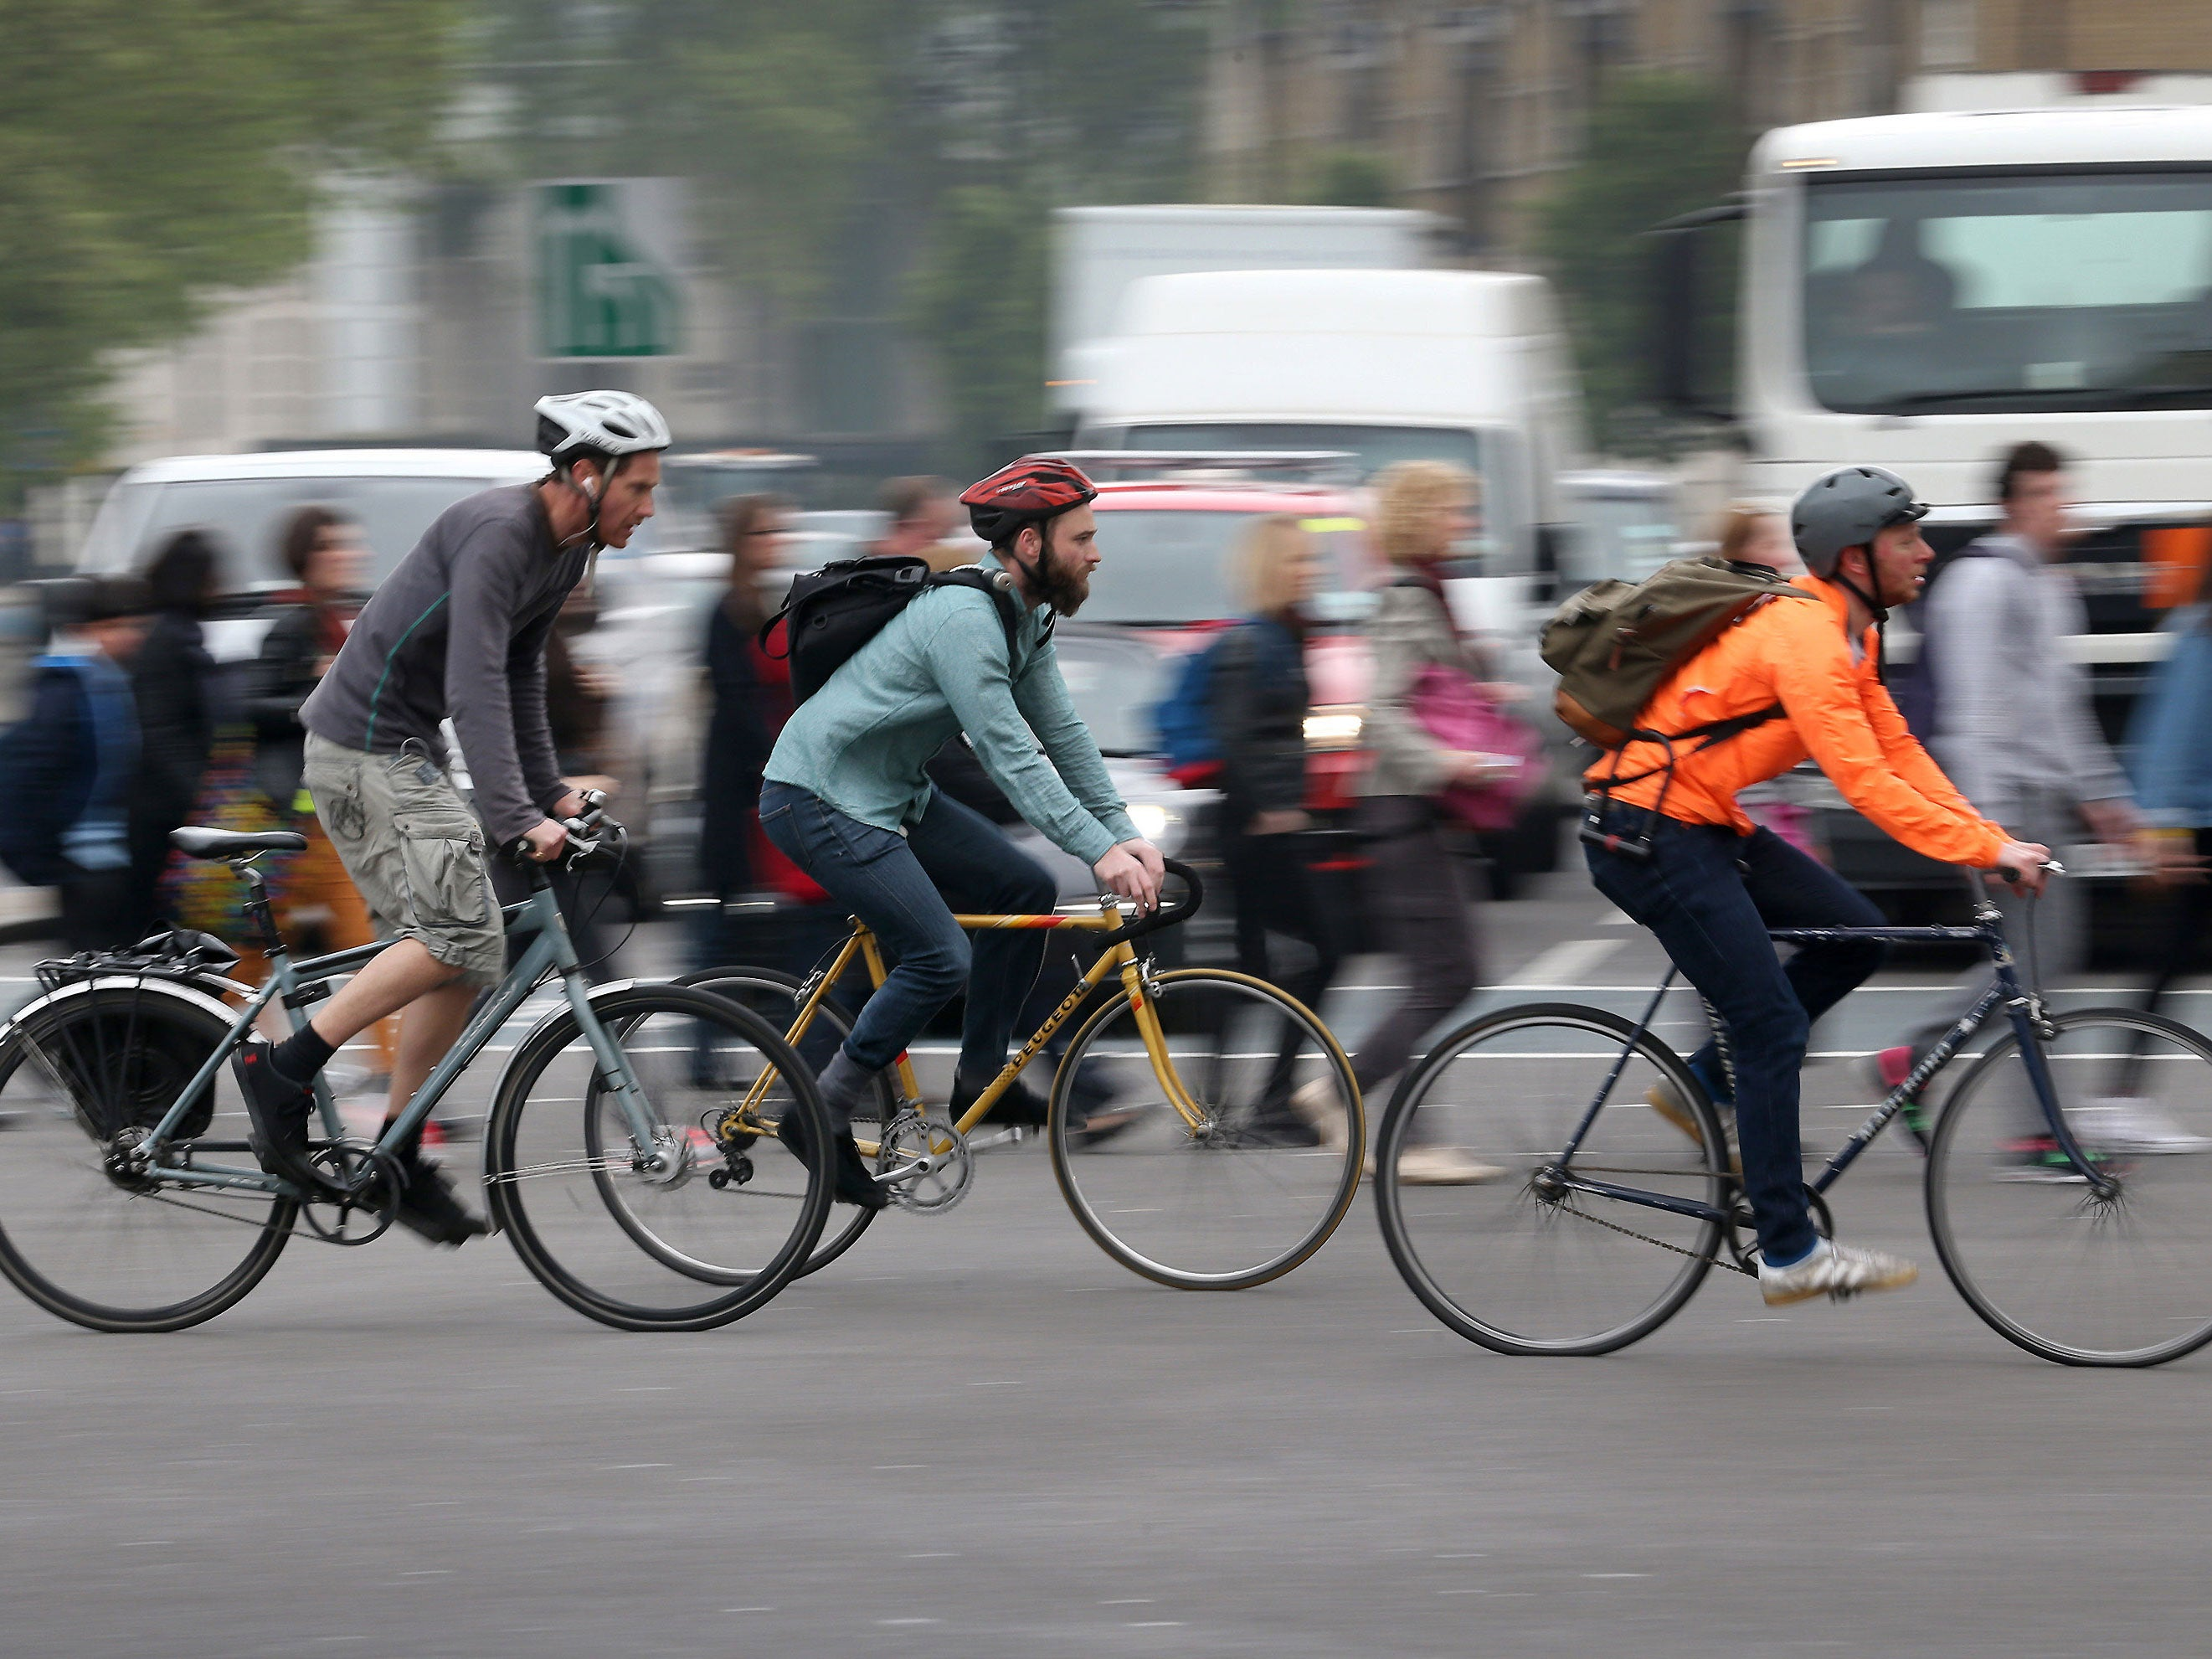 London Cycling Campaign Activist Calls For Cars To Be Banned From